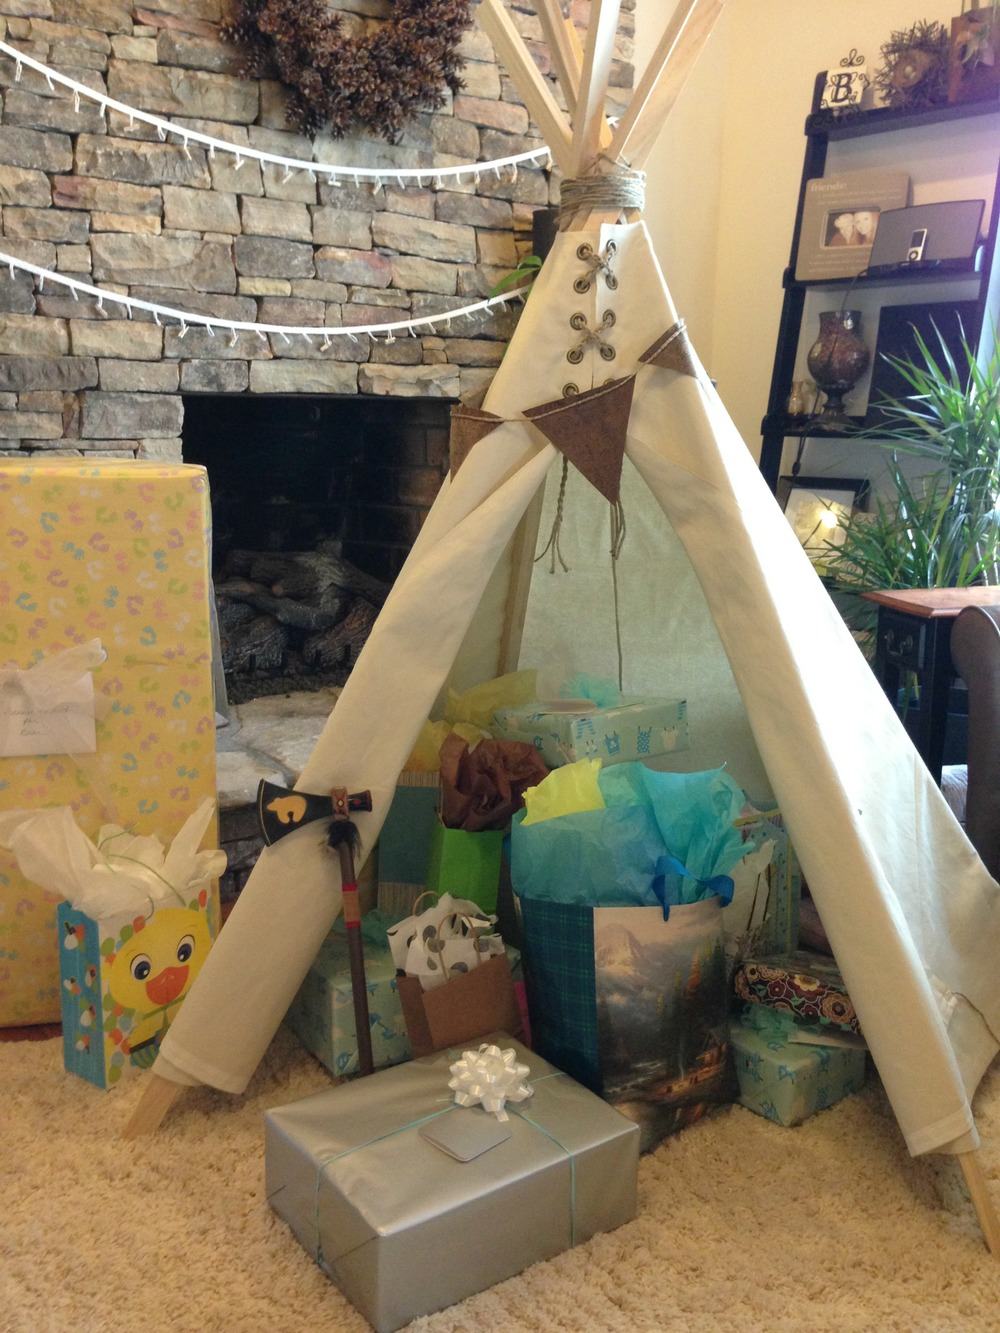 Homemade TeePee